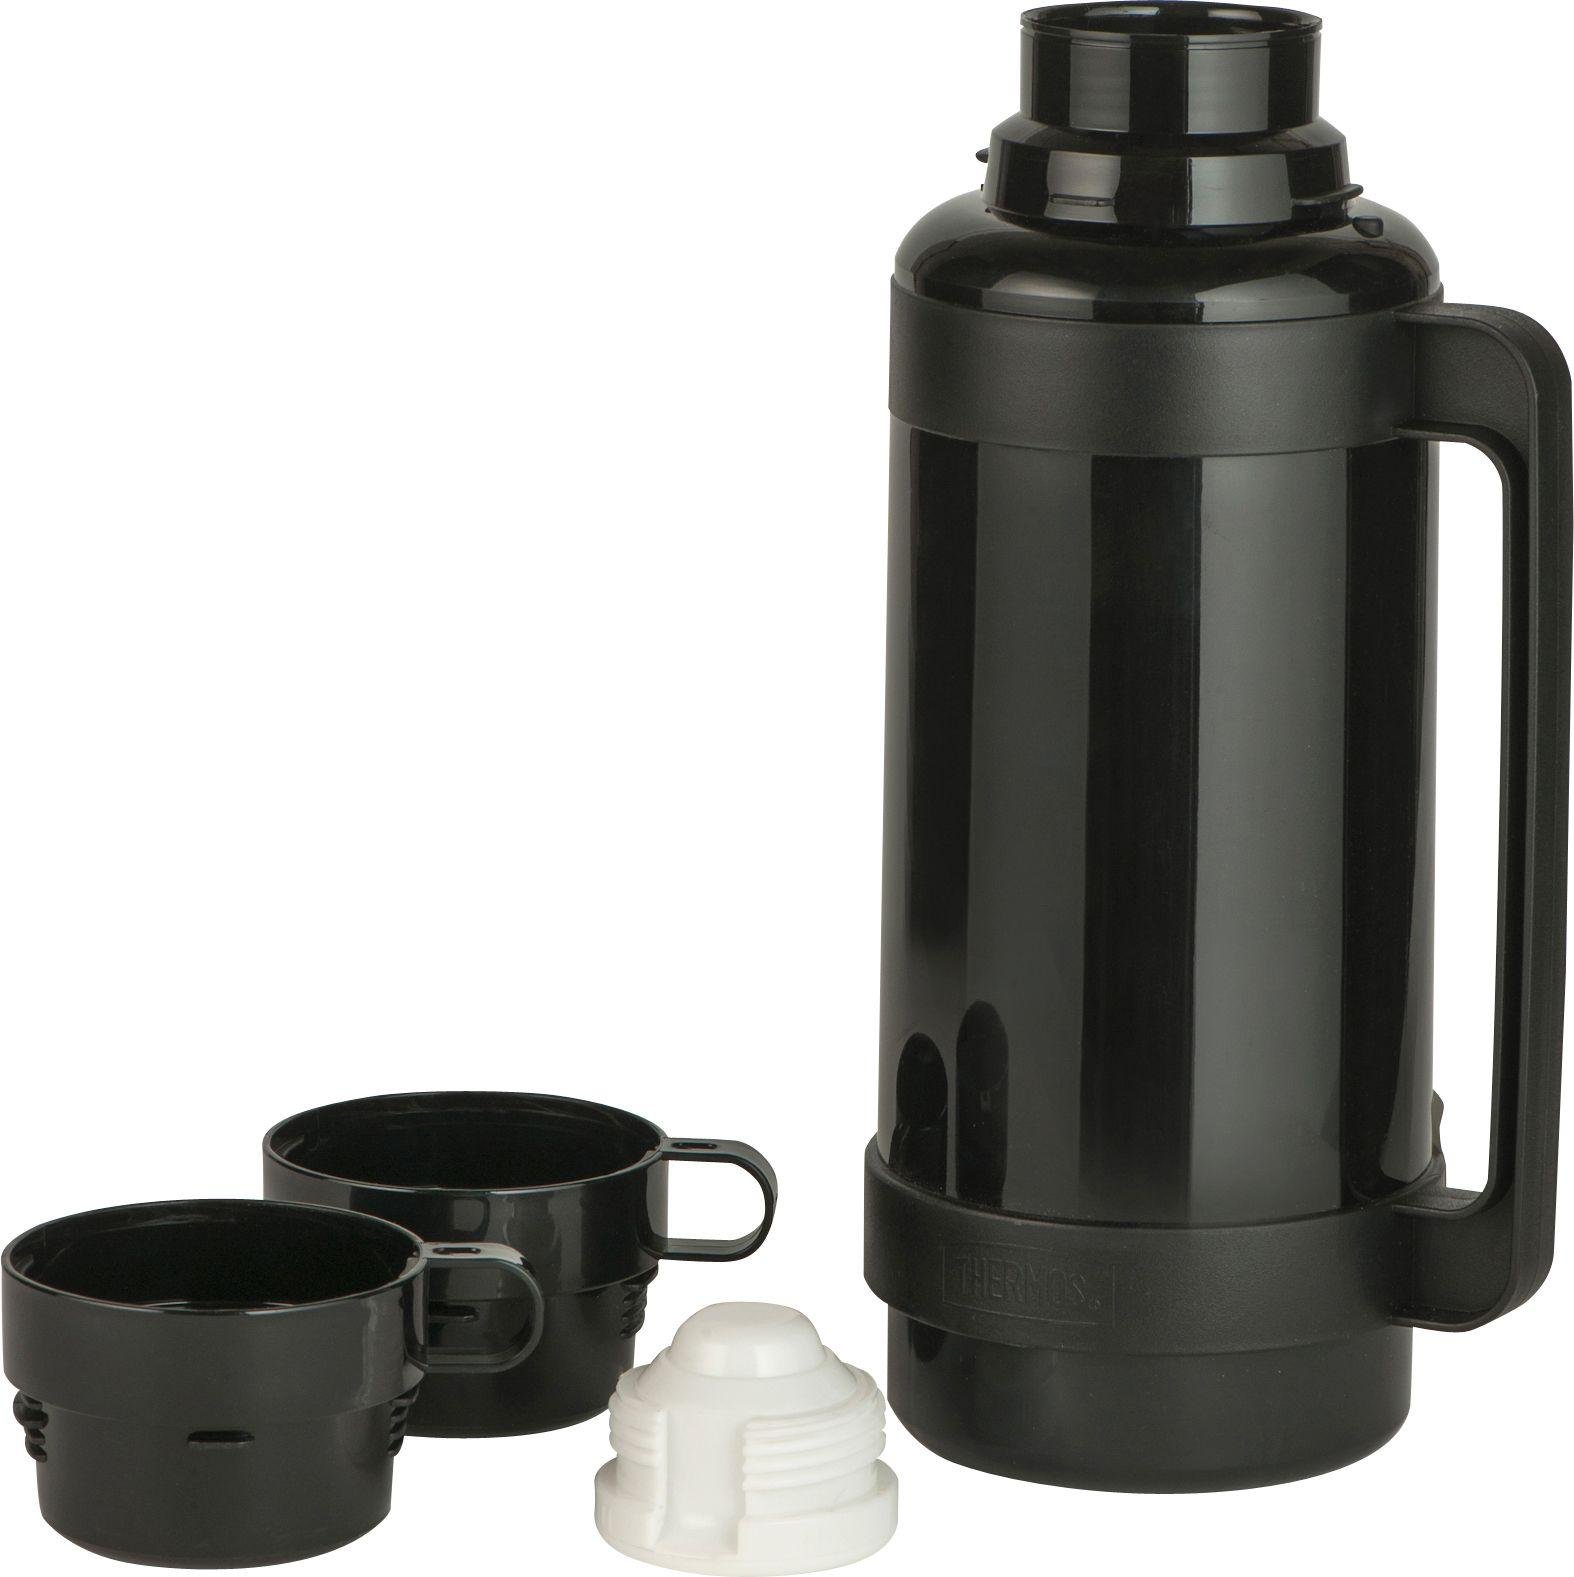 NEW Thermos Mondial Flask Plastic Exterior Is Easy To ...